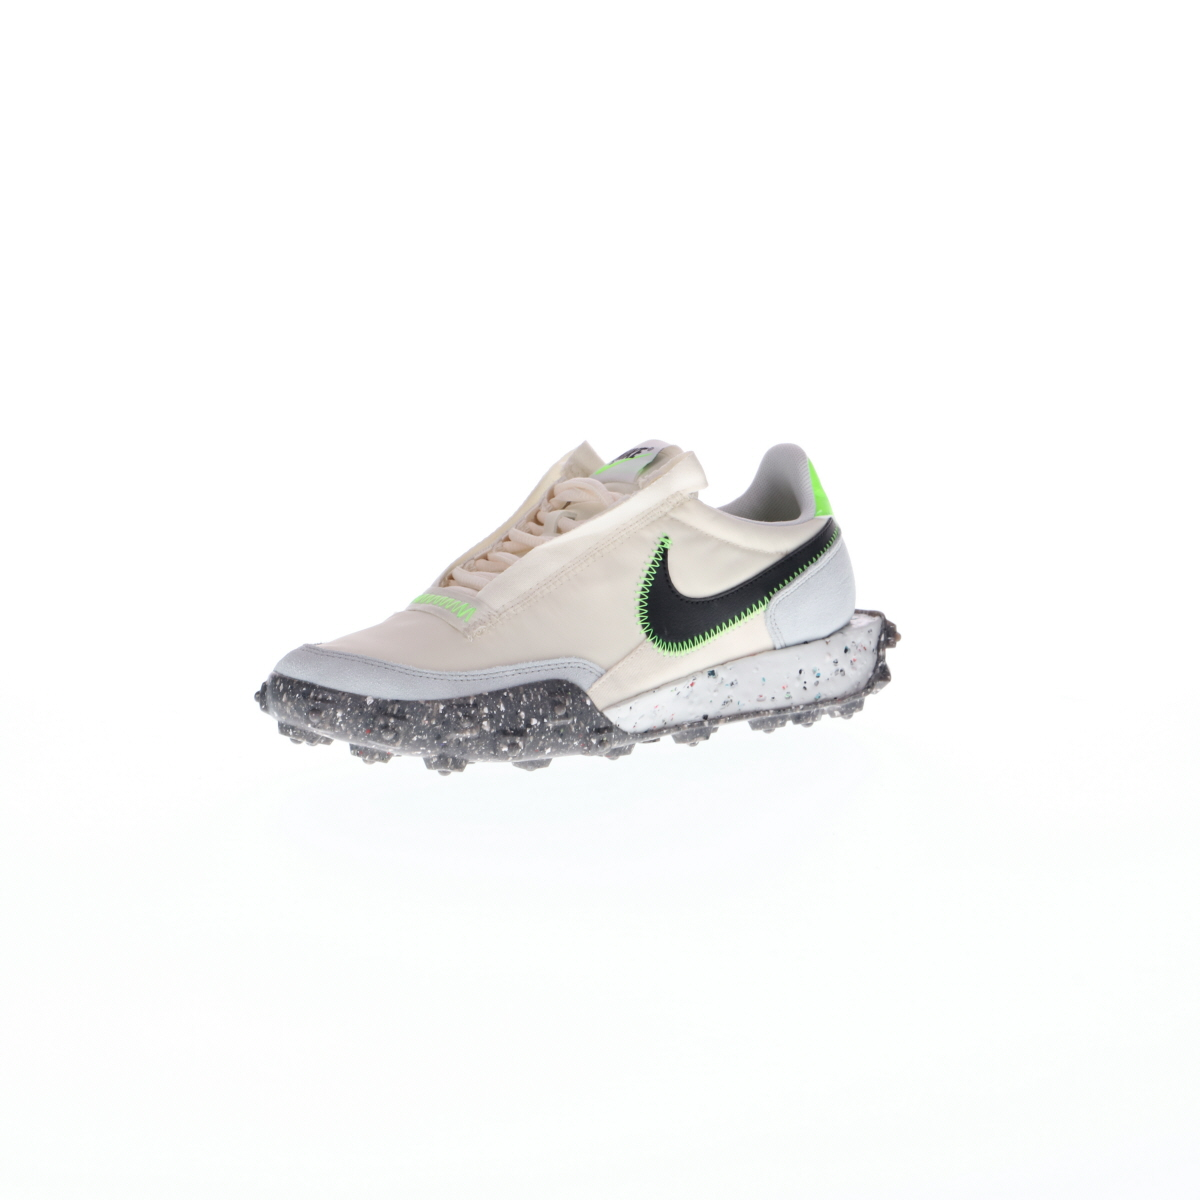 nike air max pale mint green shoes for sale